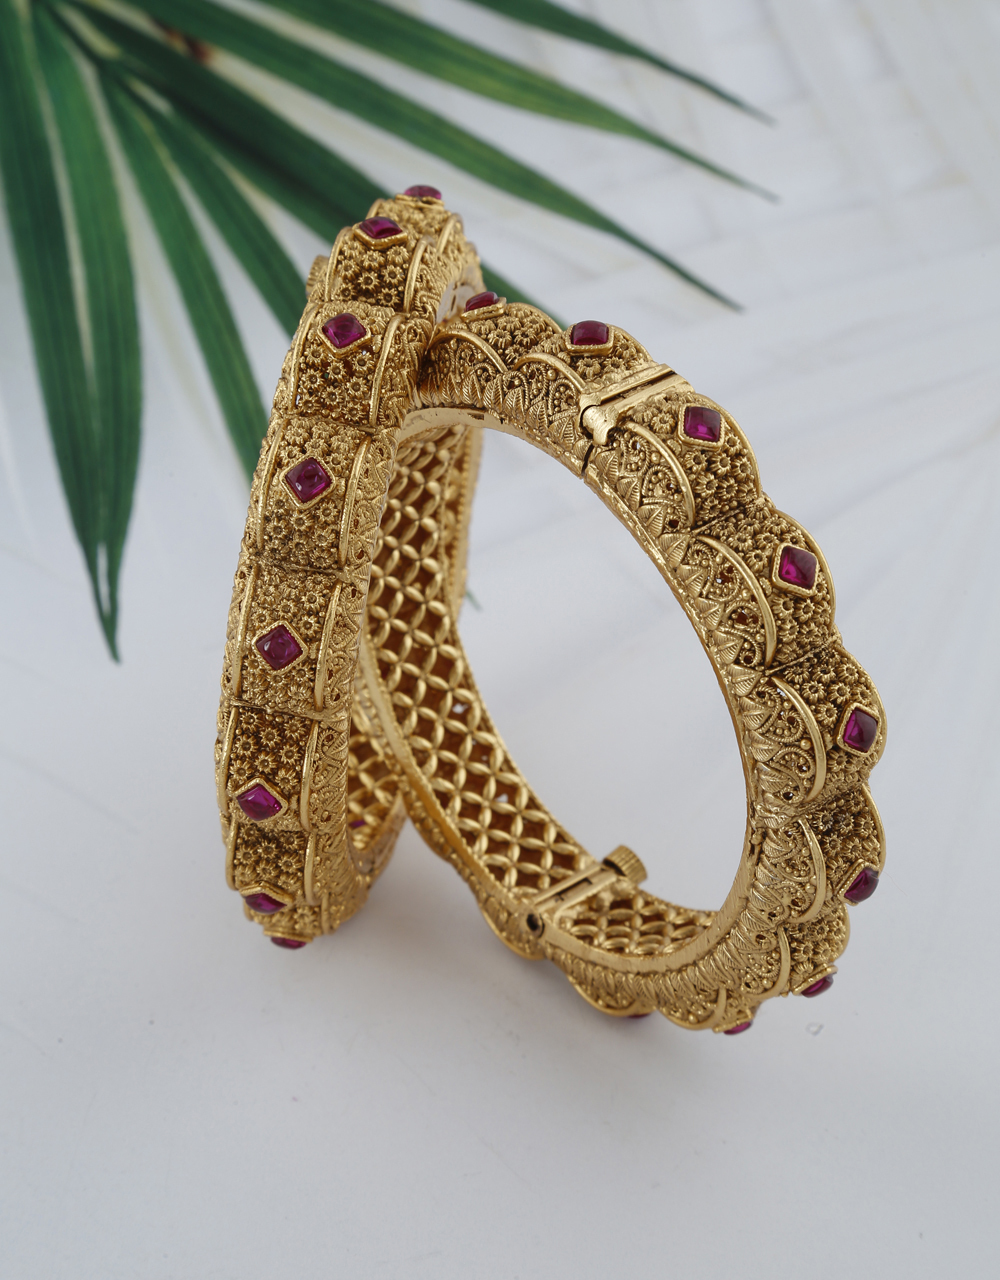 Ethnic designer bangles with matte gold finish decked with pink stones bangles for women